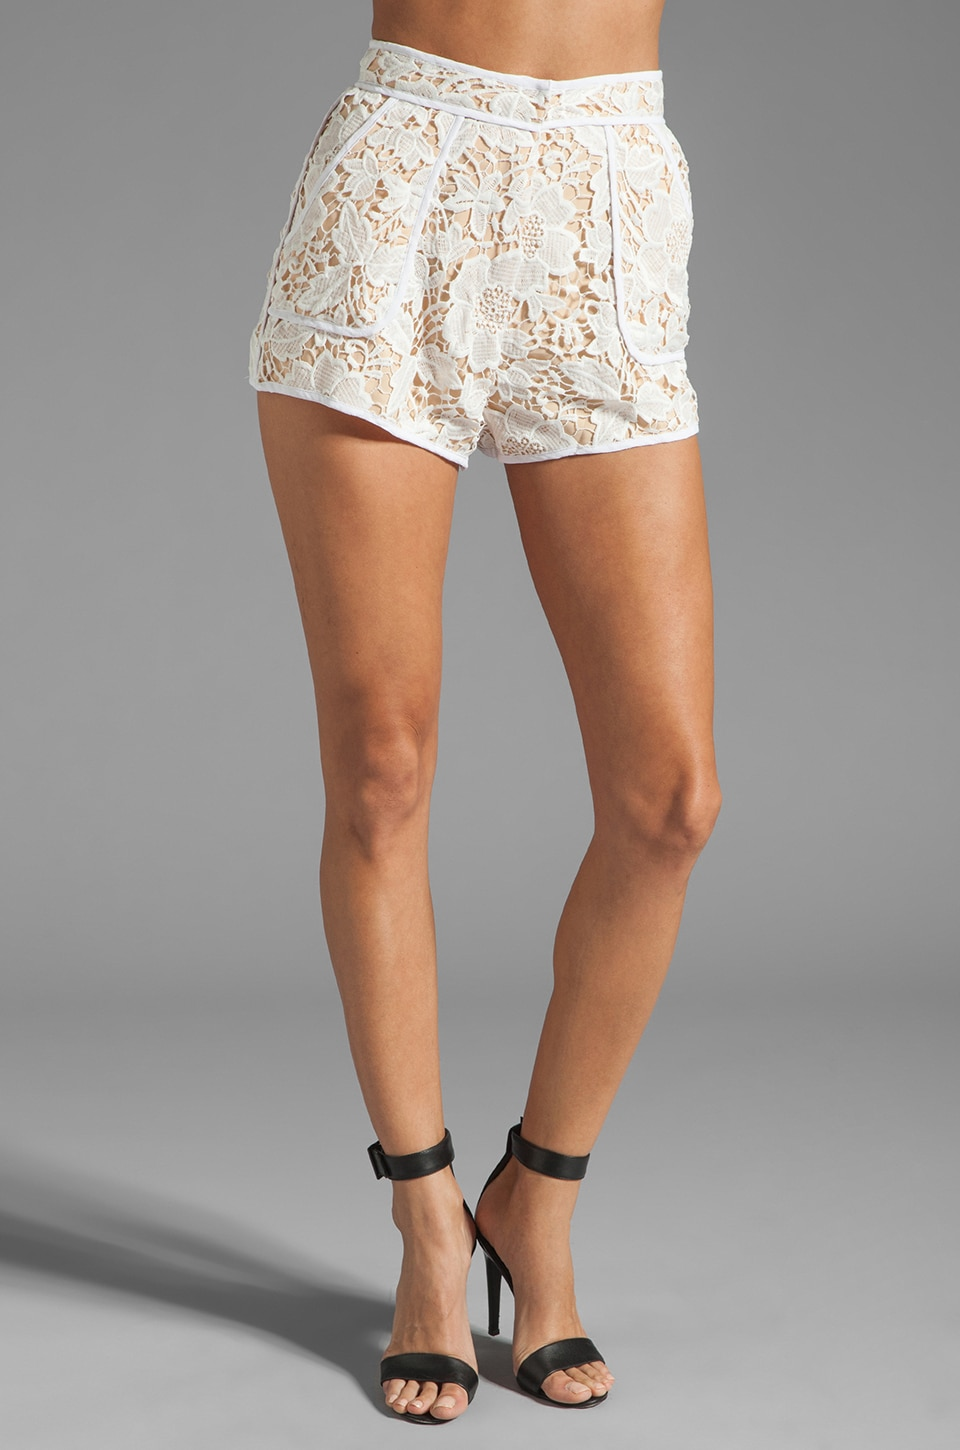 C/MEO Brakelight Short in Ivory